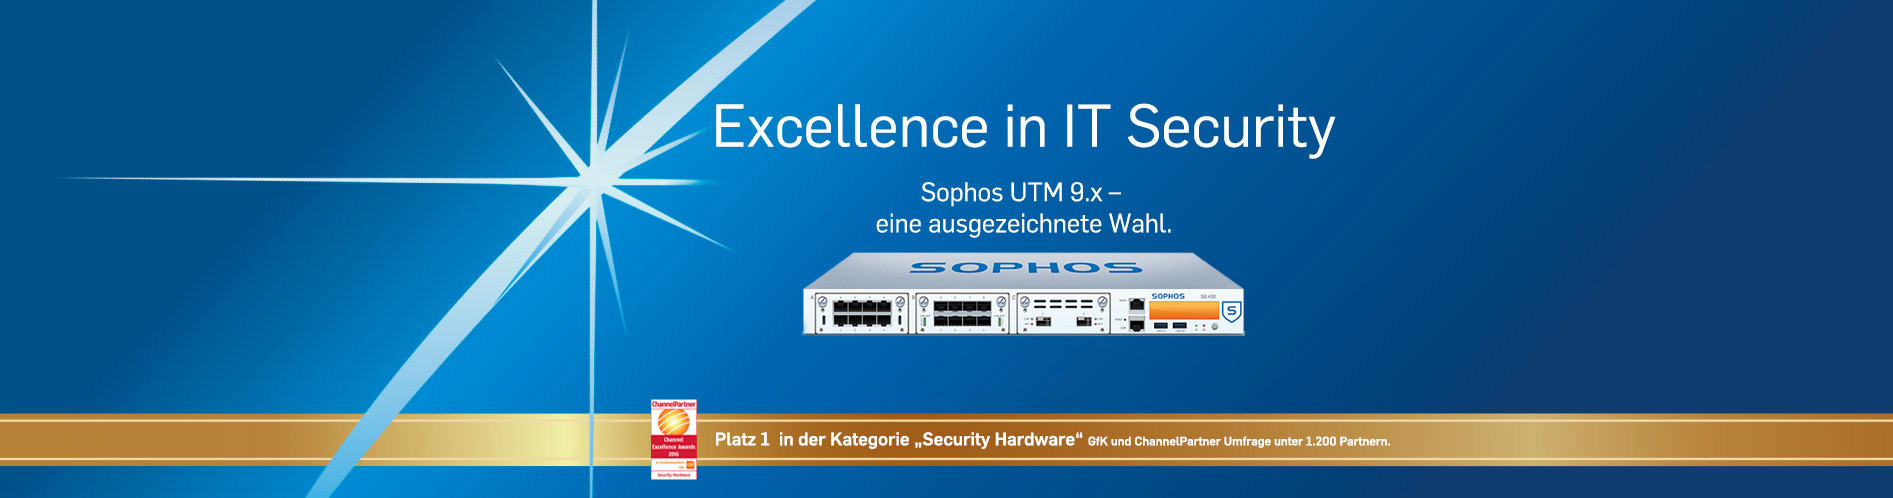 Sophos IT-Security-Lösungen| Wensauer Com-Systeme